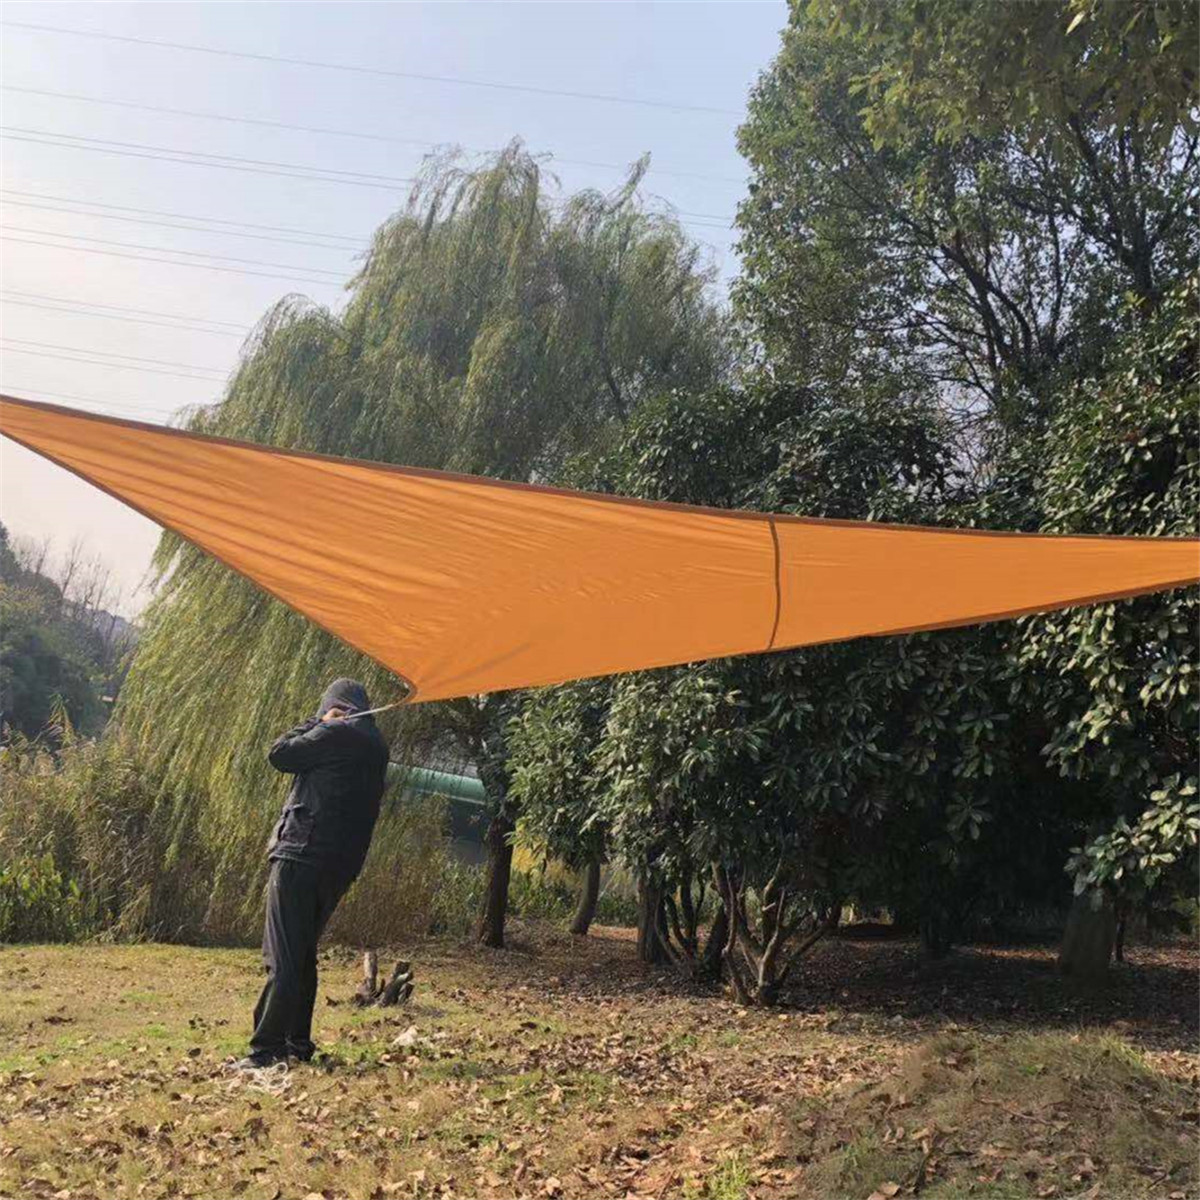 5x5m Outdoor Triangle Sun Sail Shade Garden Patio Tent Sunshade Canopy Awning Waterproof UV Cover